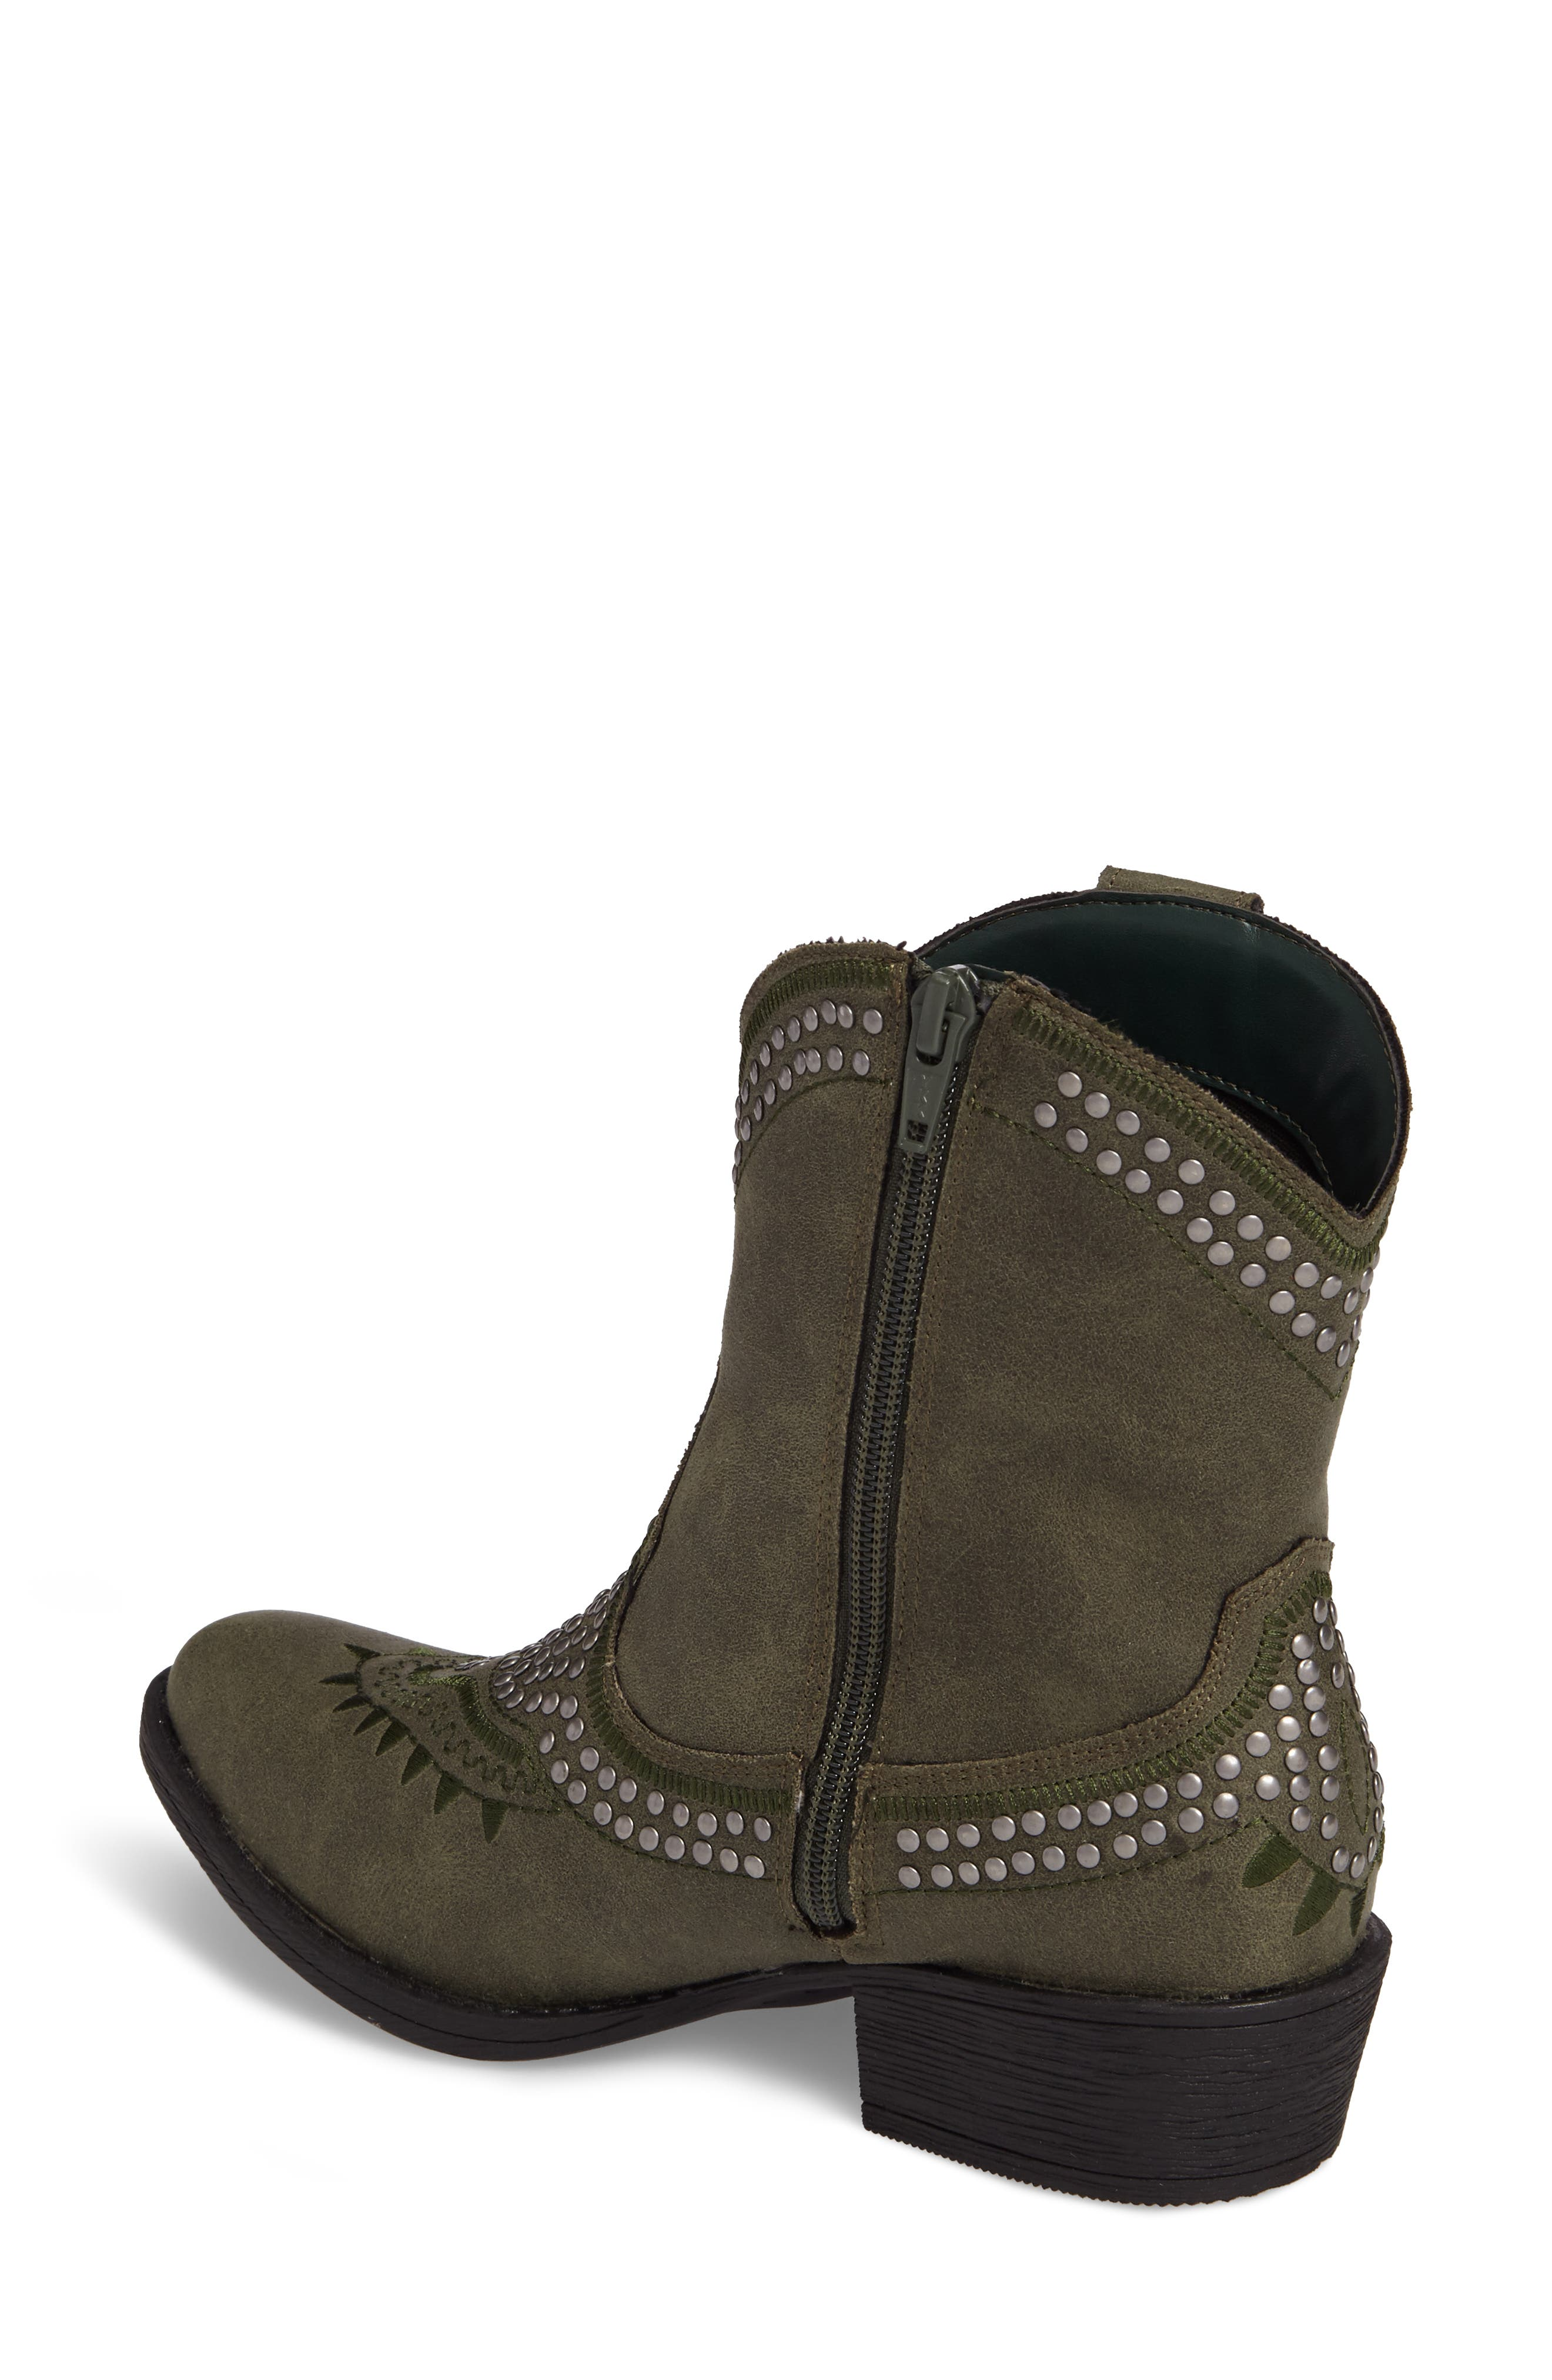 Amour Embellished Western Bootie,                             Alternate thumbnail 6, color,